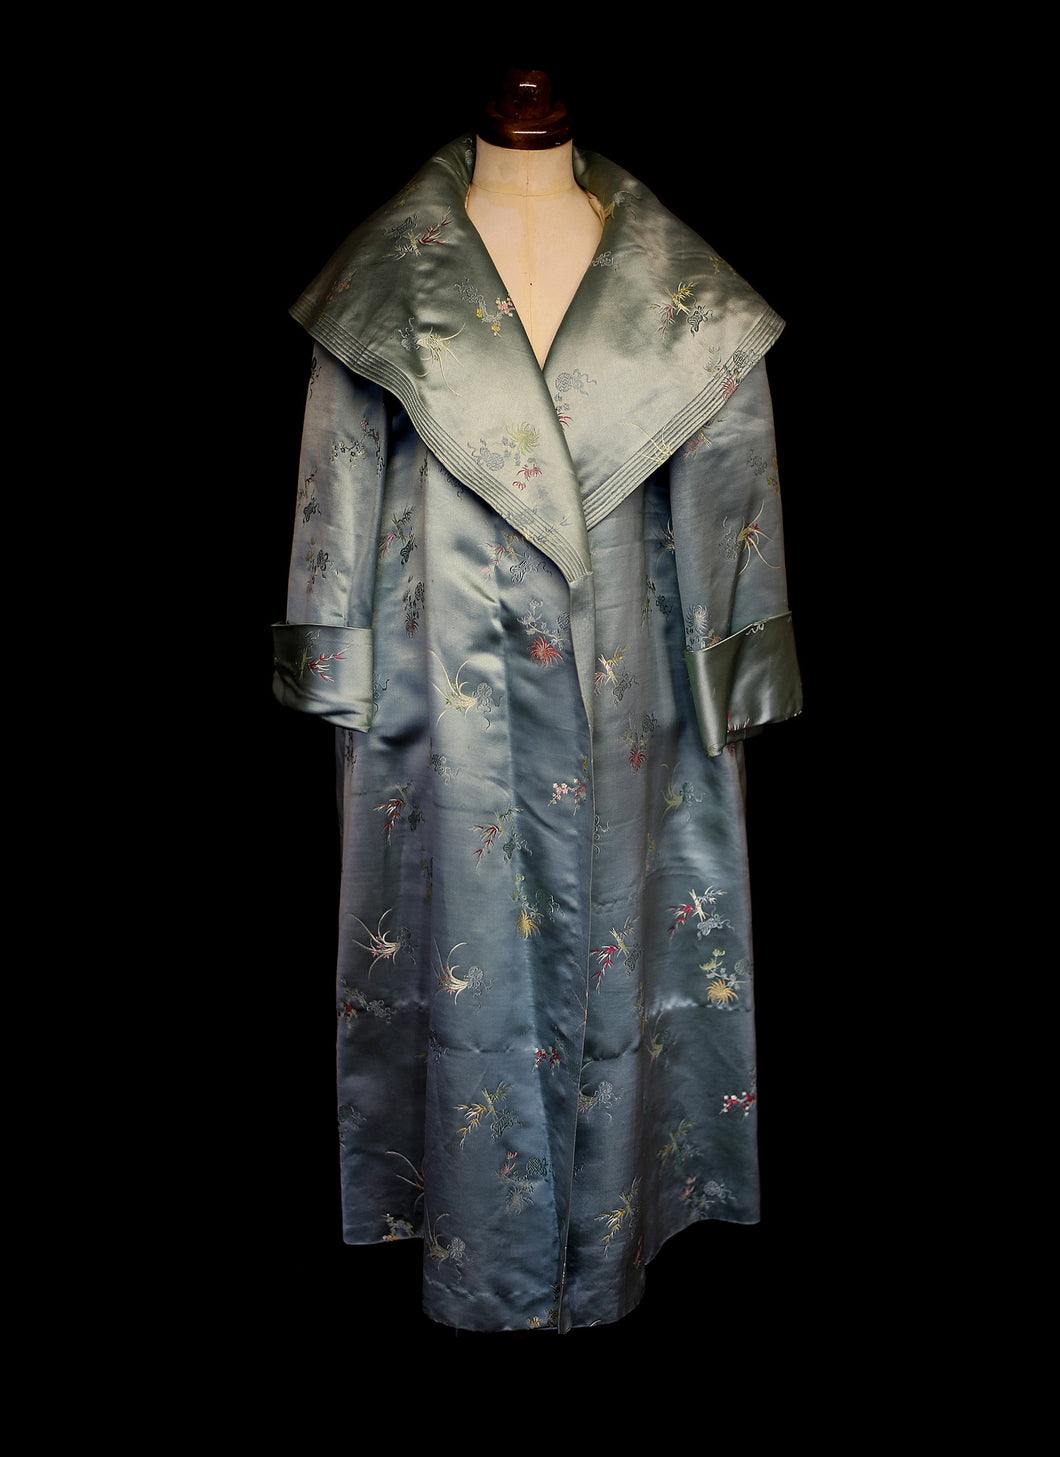 Vintage 1950s Green Satin Opera Coat